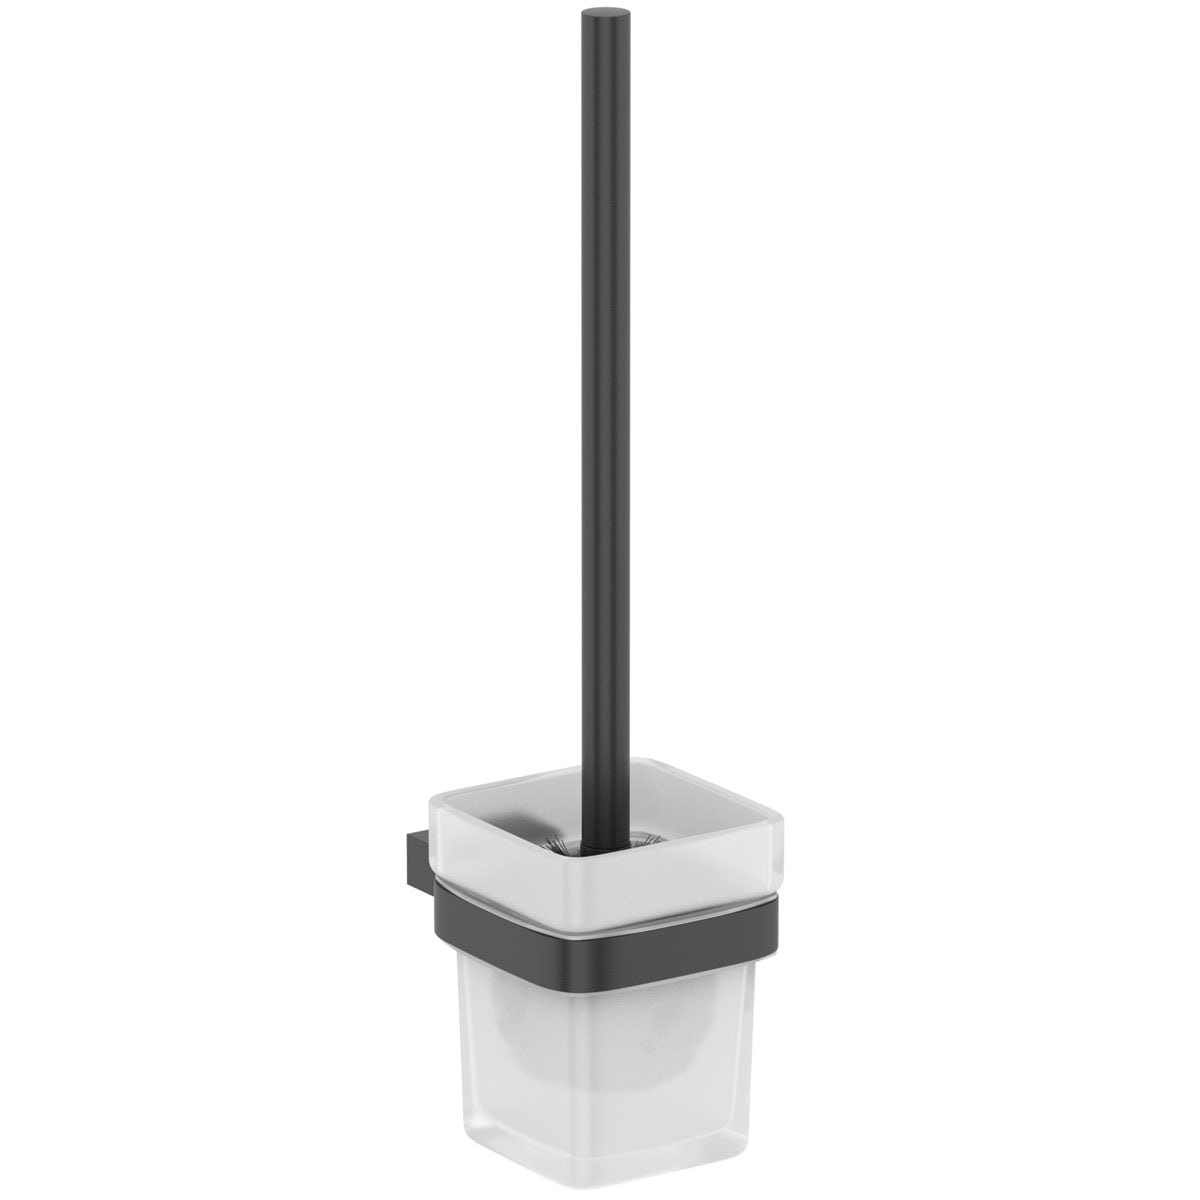 Mode Spencer black toilet brush and holder